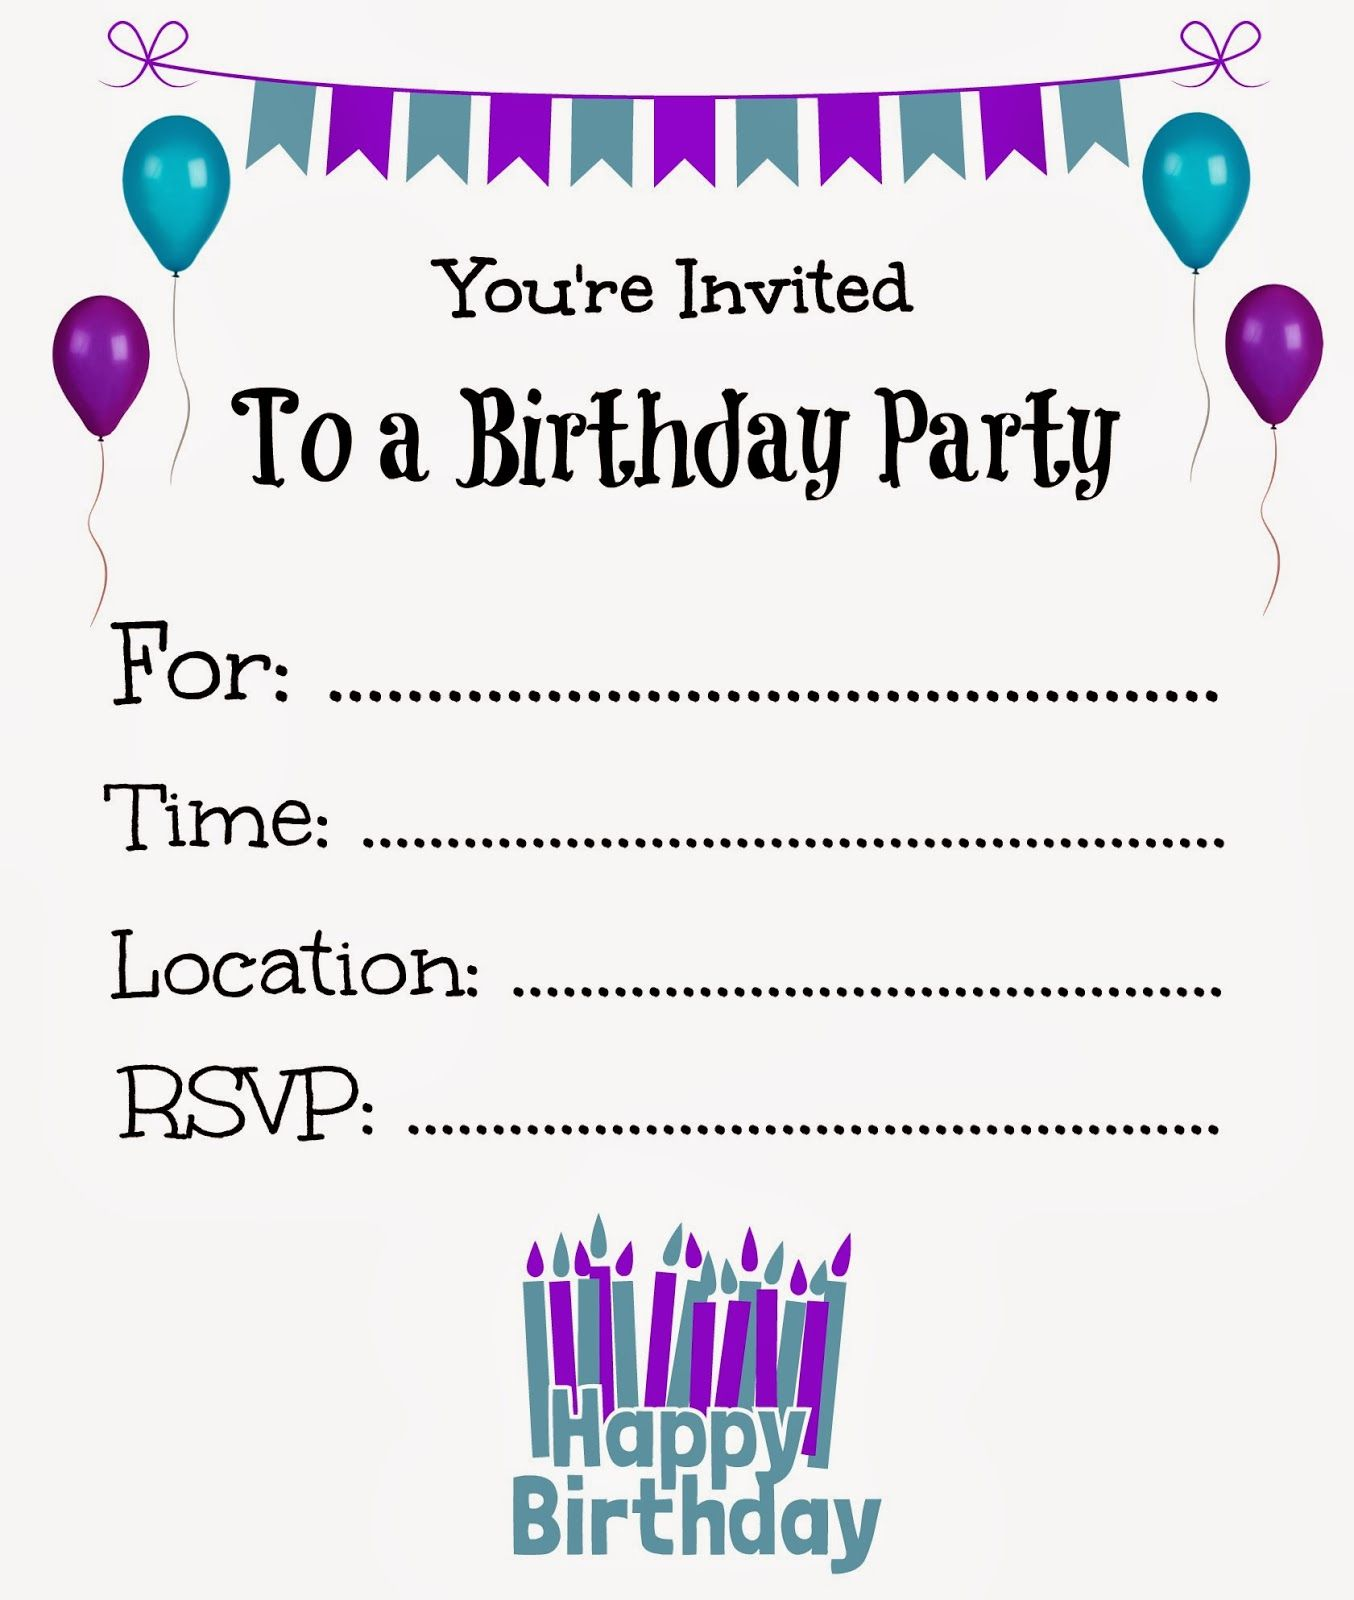 happy birthday invitation template free ; Free-birthday-invitation-templates-is-one-of-the-best-idea-for-you-to-make-your-own-birthday-invitation-design-14